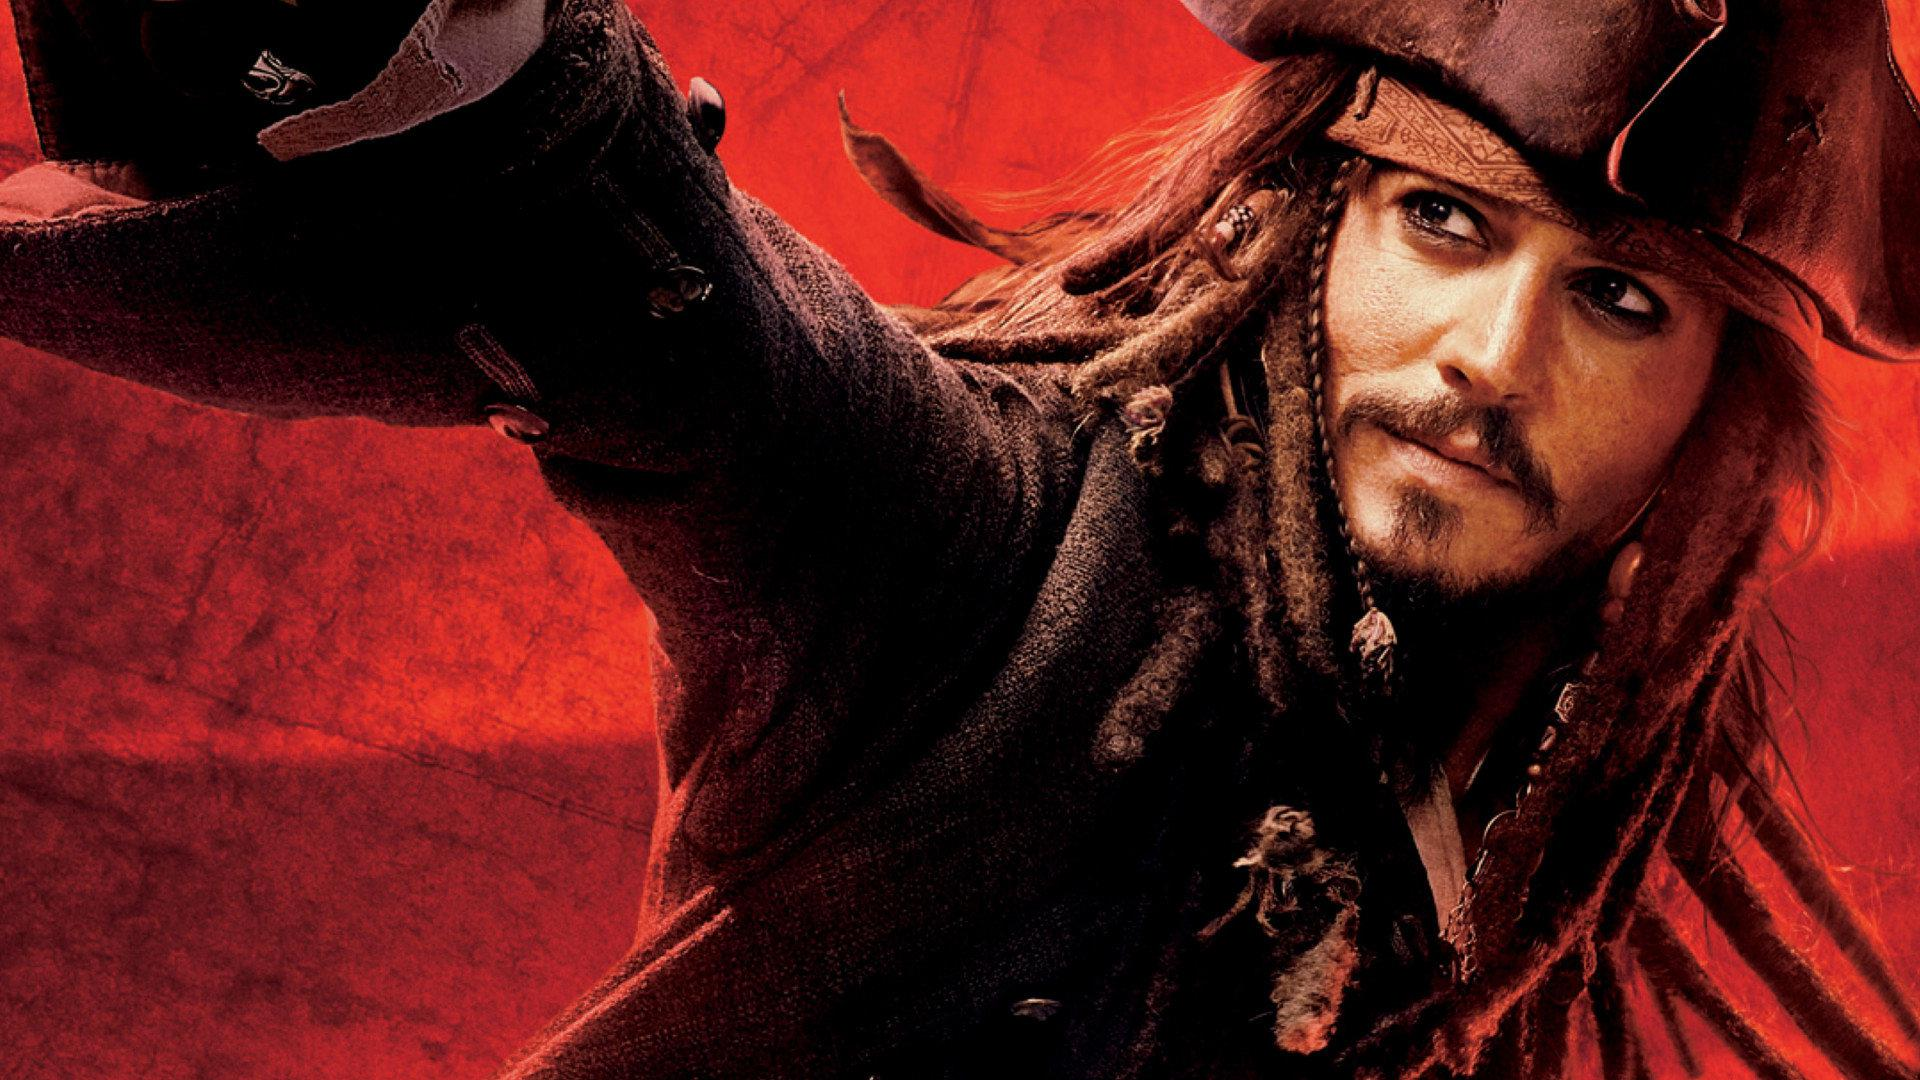 Wallpaper Pirates of the Caribbean Jack Sparrow pirates